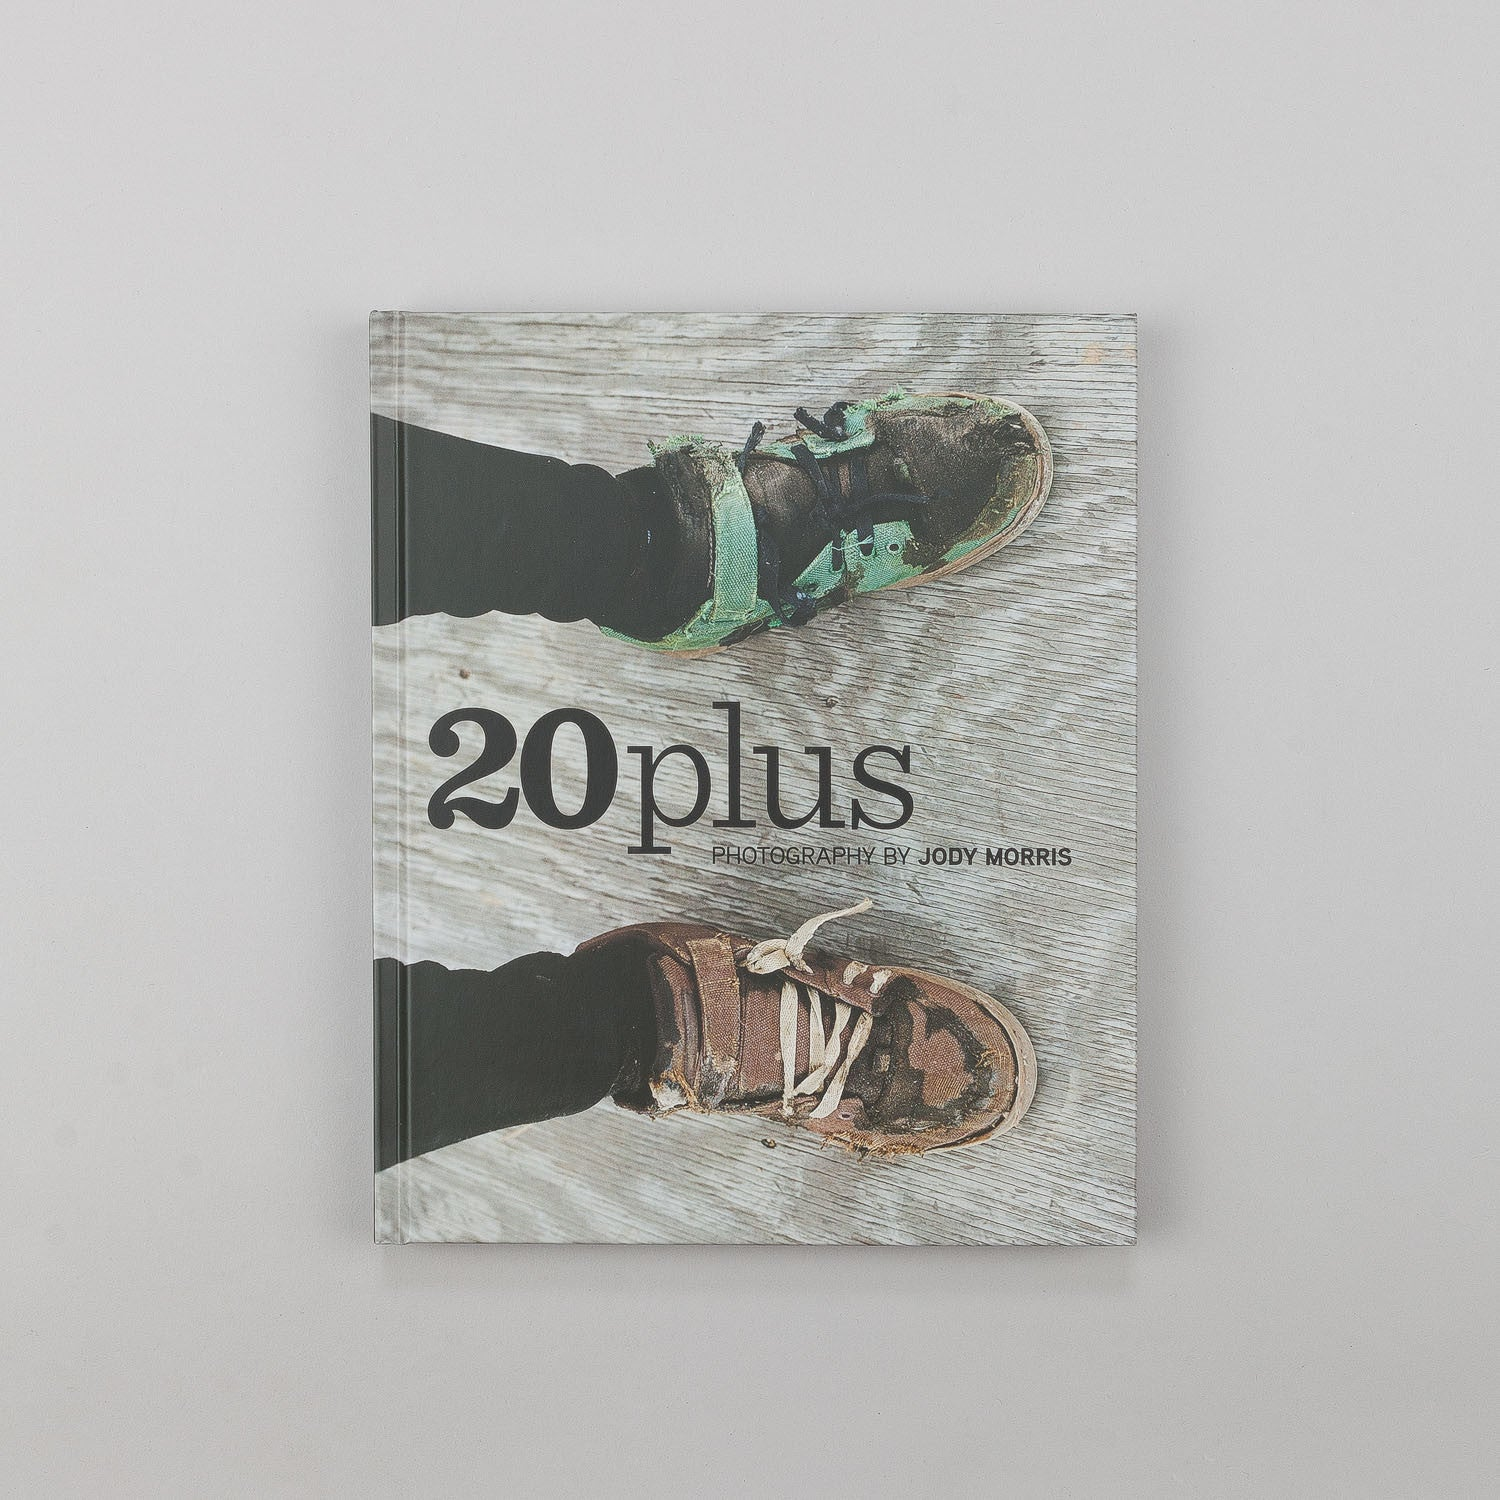 20 Plus:The Photography of Jody Morris